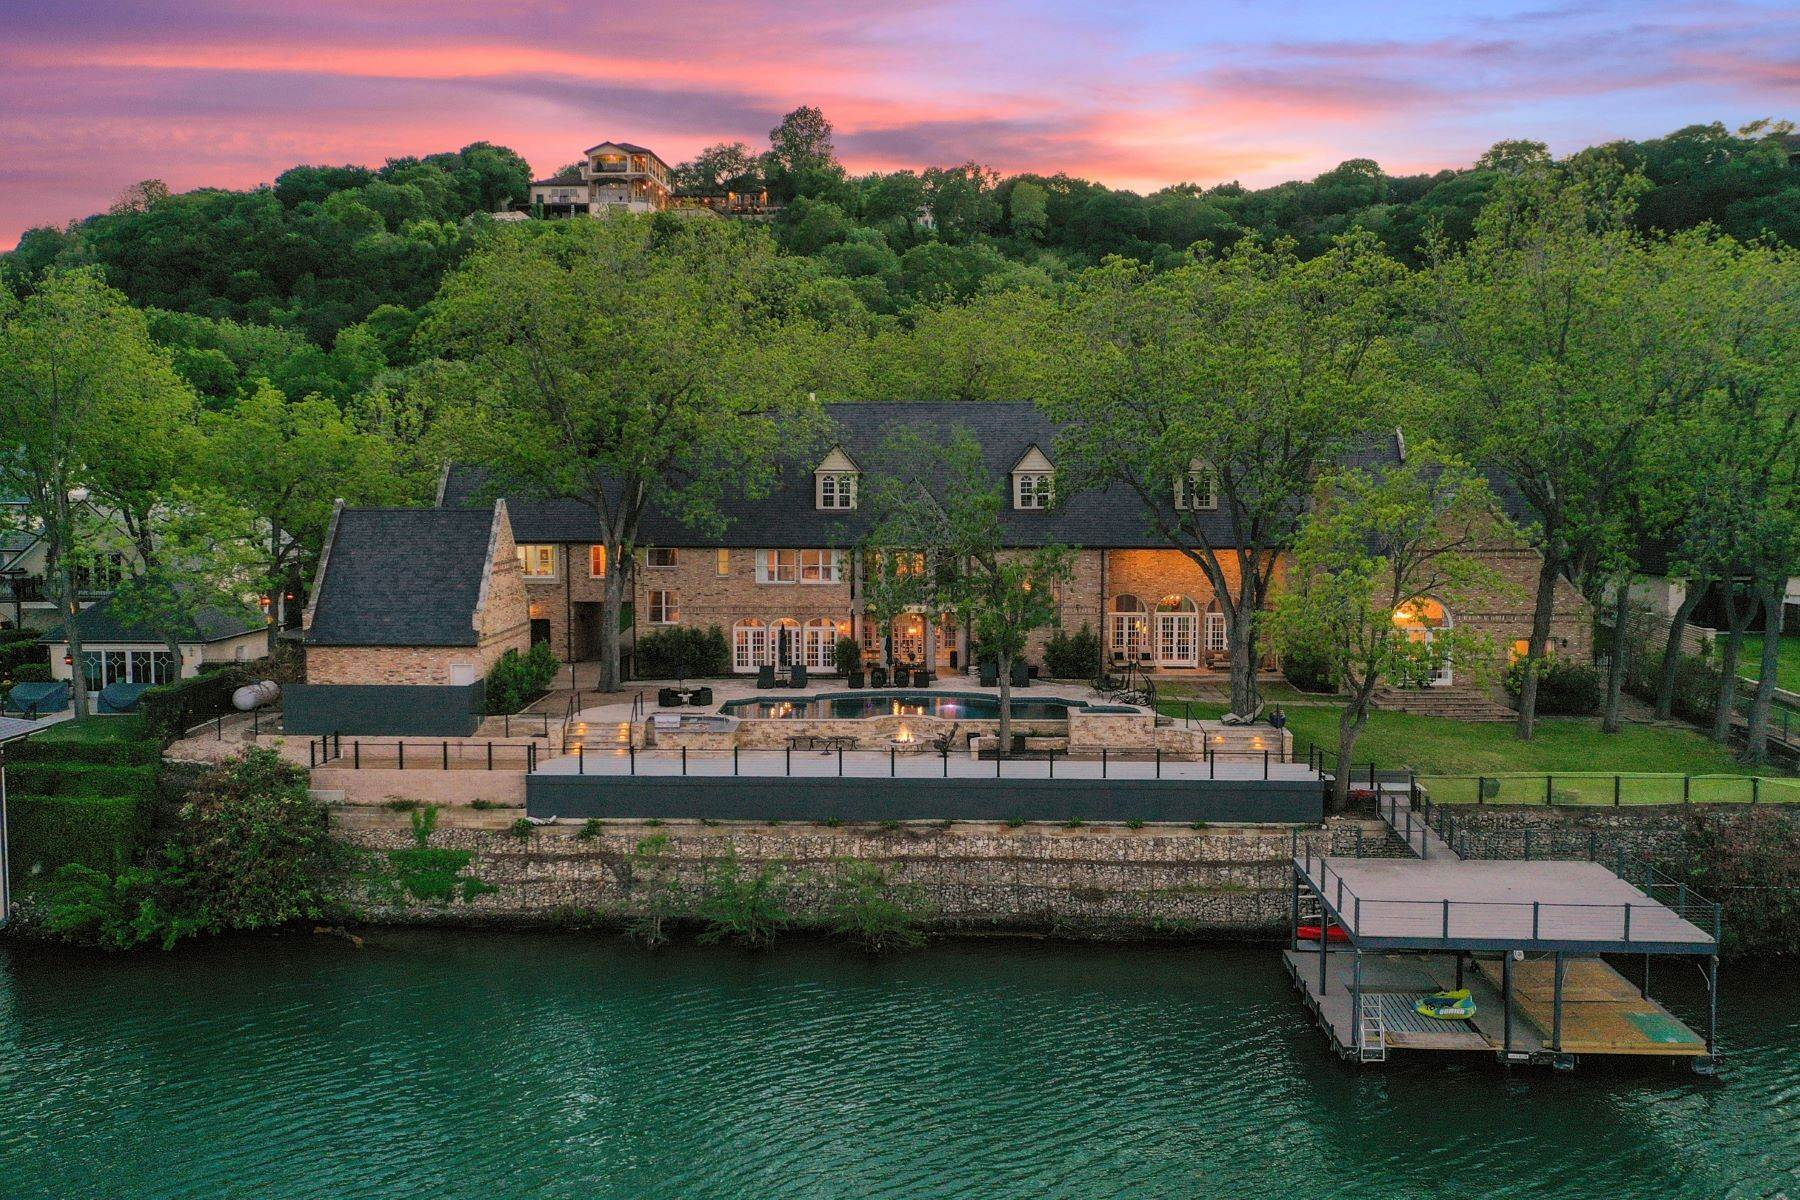 Single Family Homes für Verkauf beim One-Of-A-Kind European Chateau on Lake Austin 1209 North Weston Lane, Austin, Texas 78733 Vereinigte Staaten